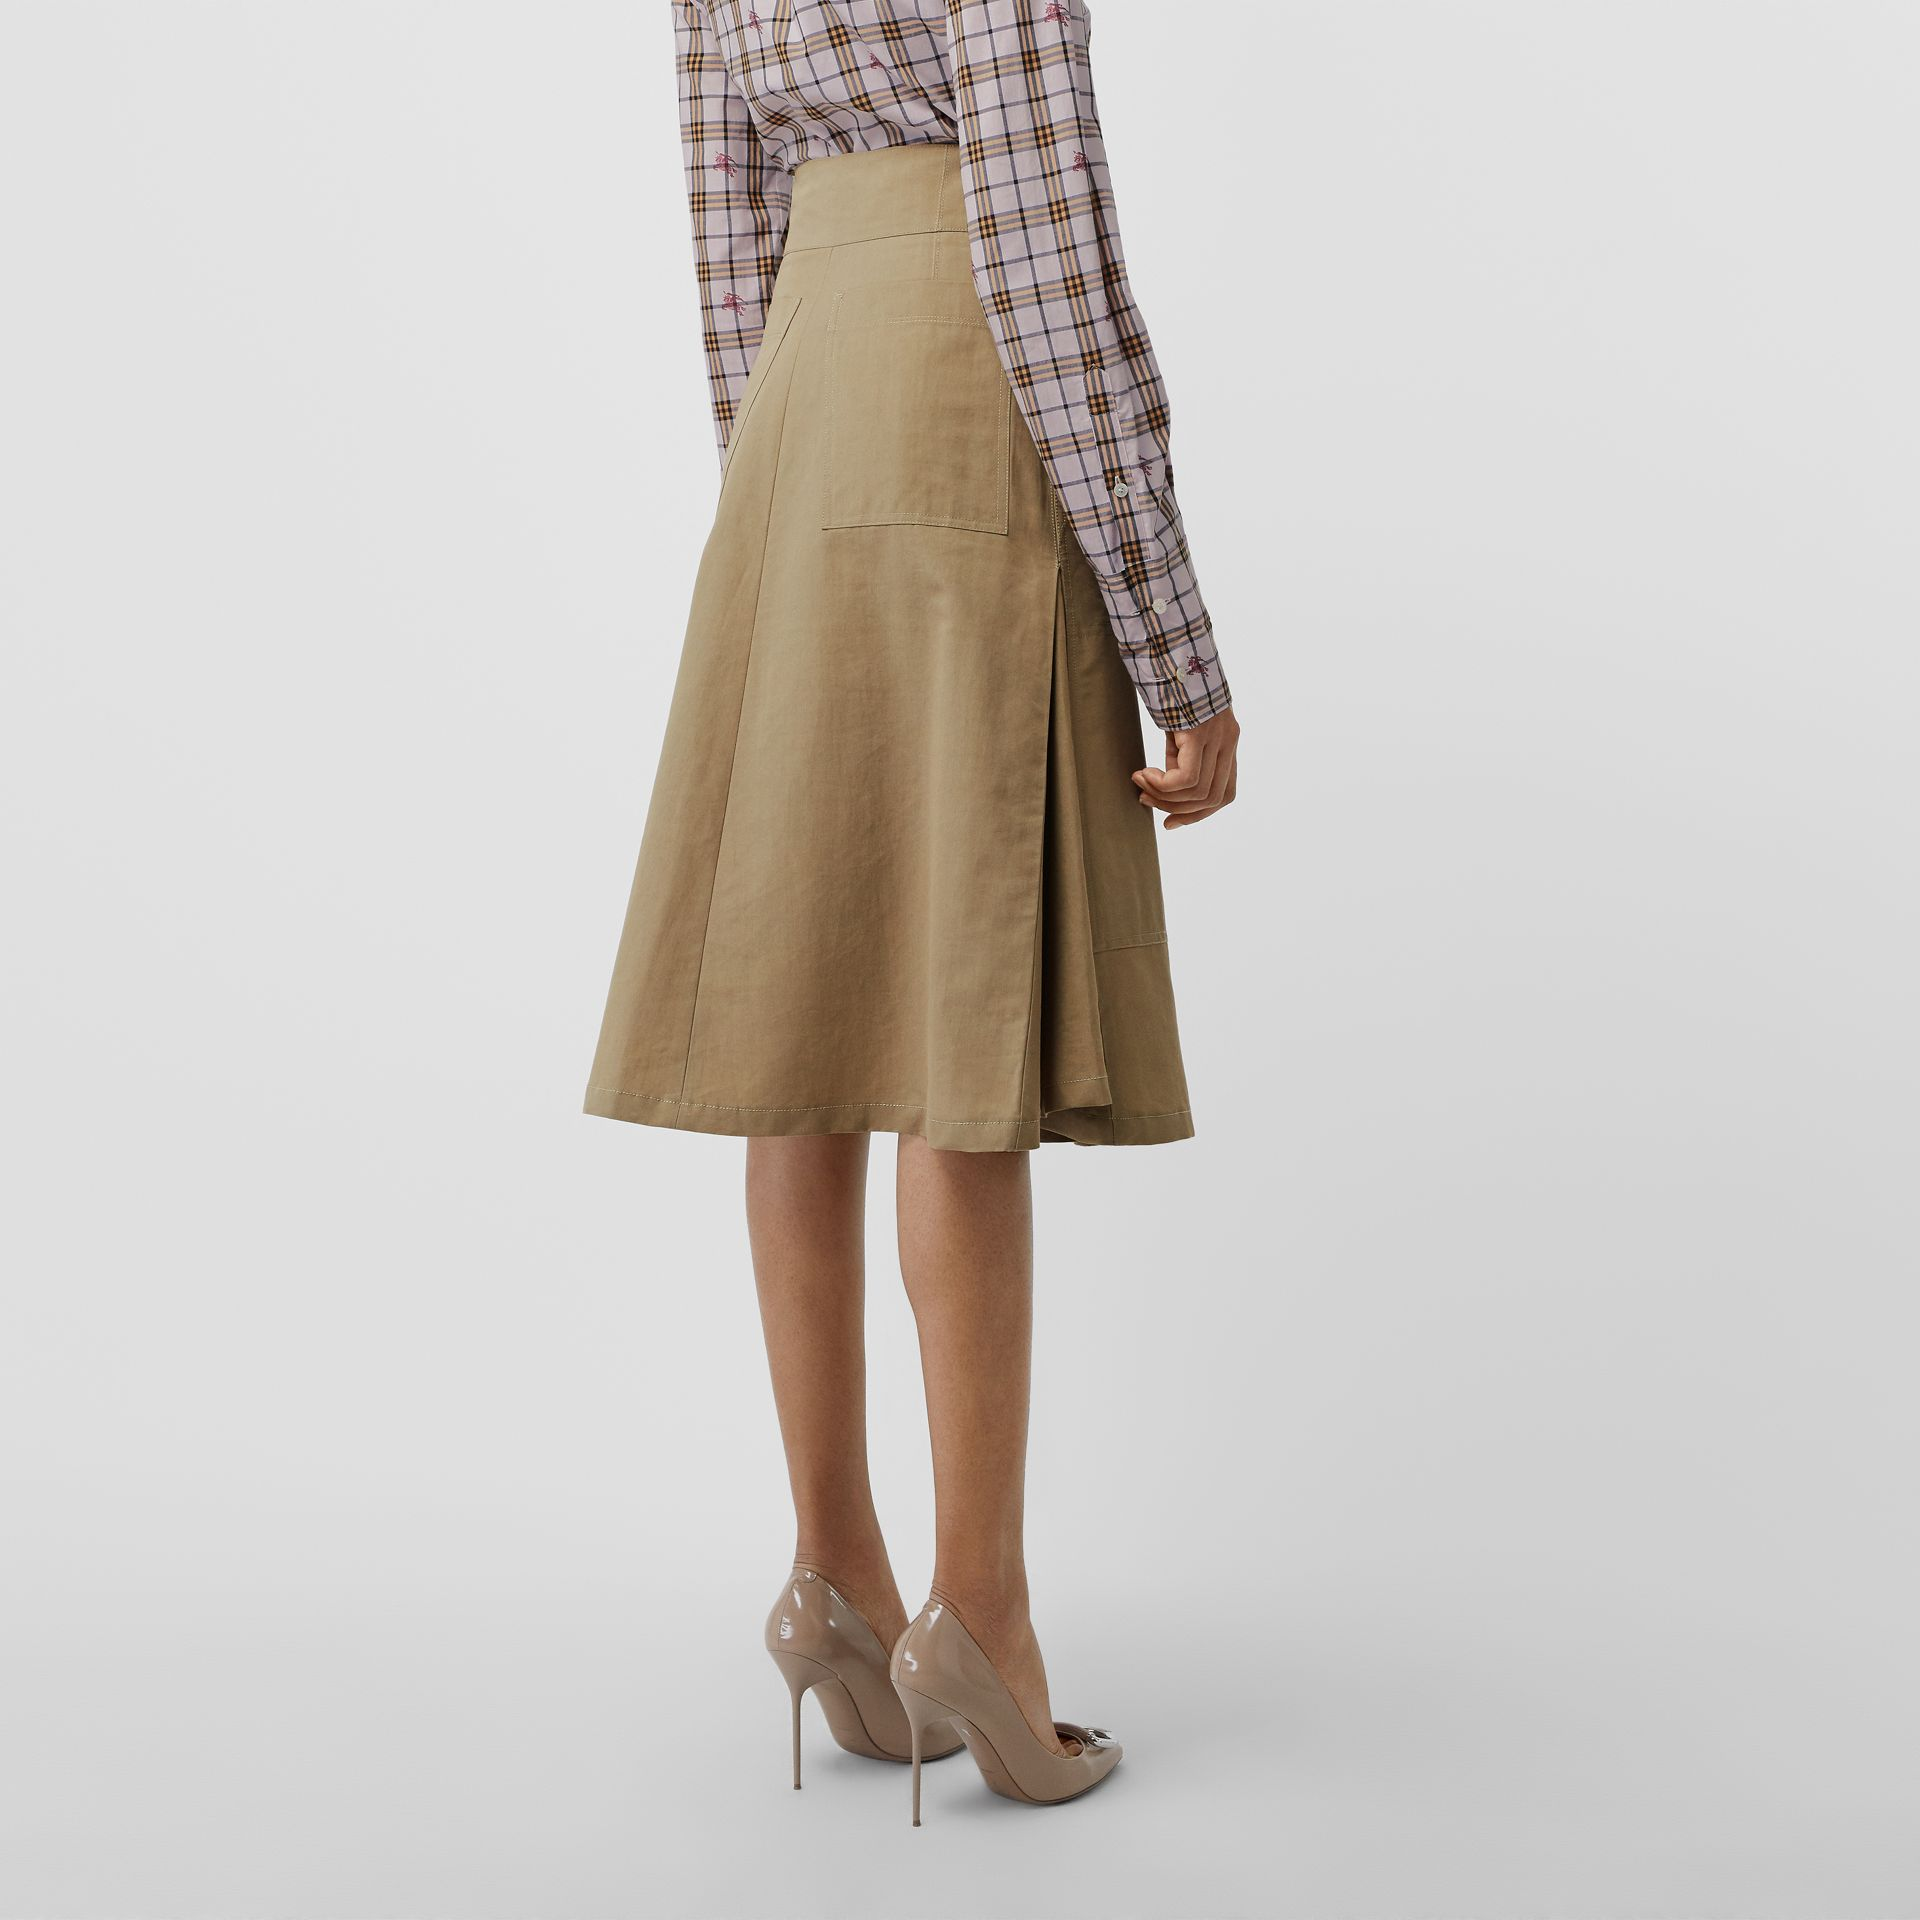 Cotton Silk High-waisted Skirt in Beige - Women | Burberry Singapore - gallery image 2